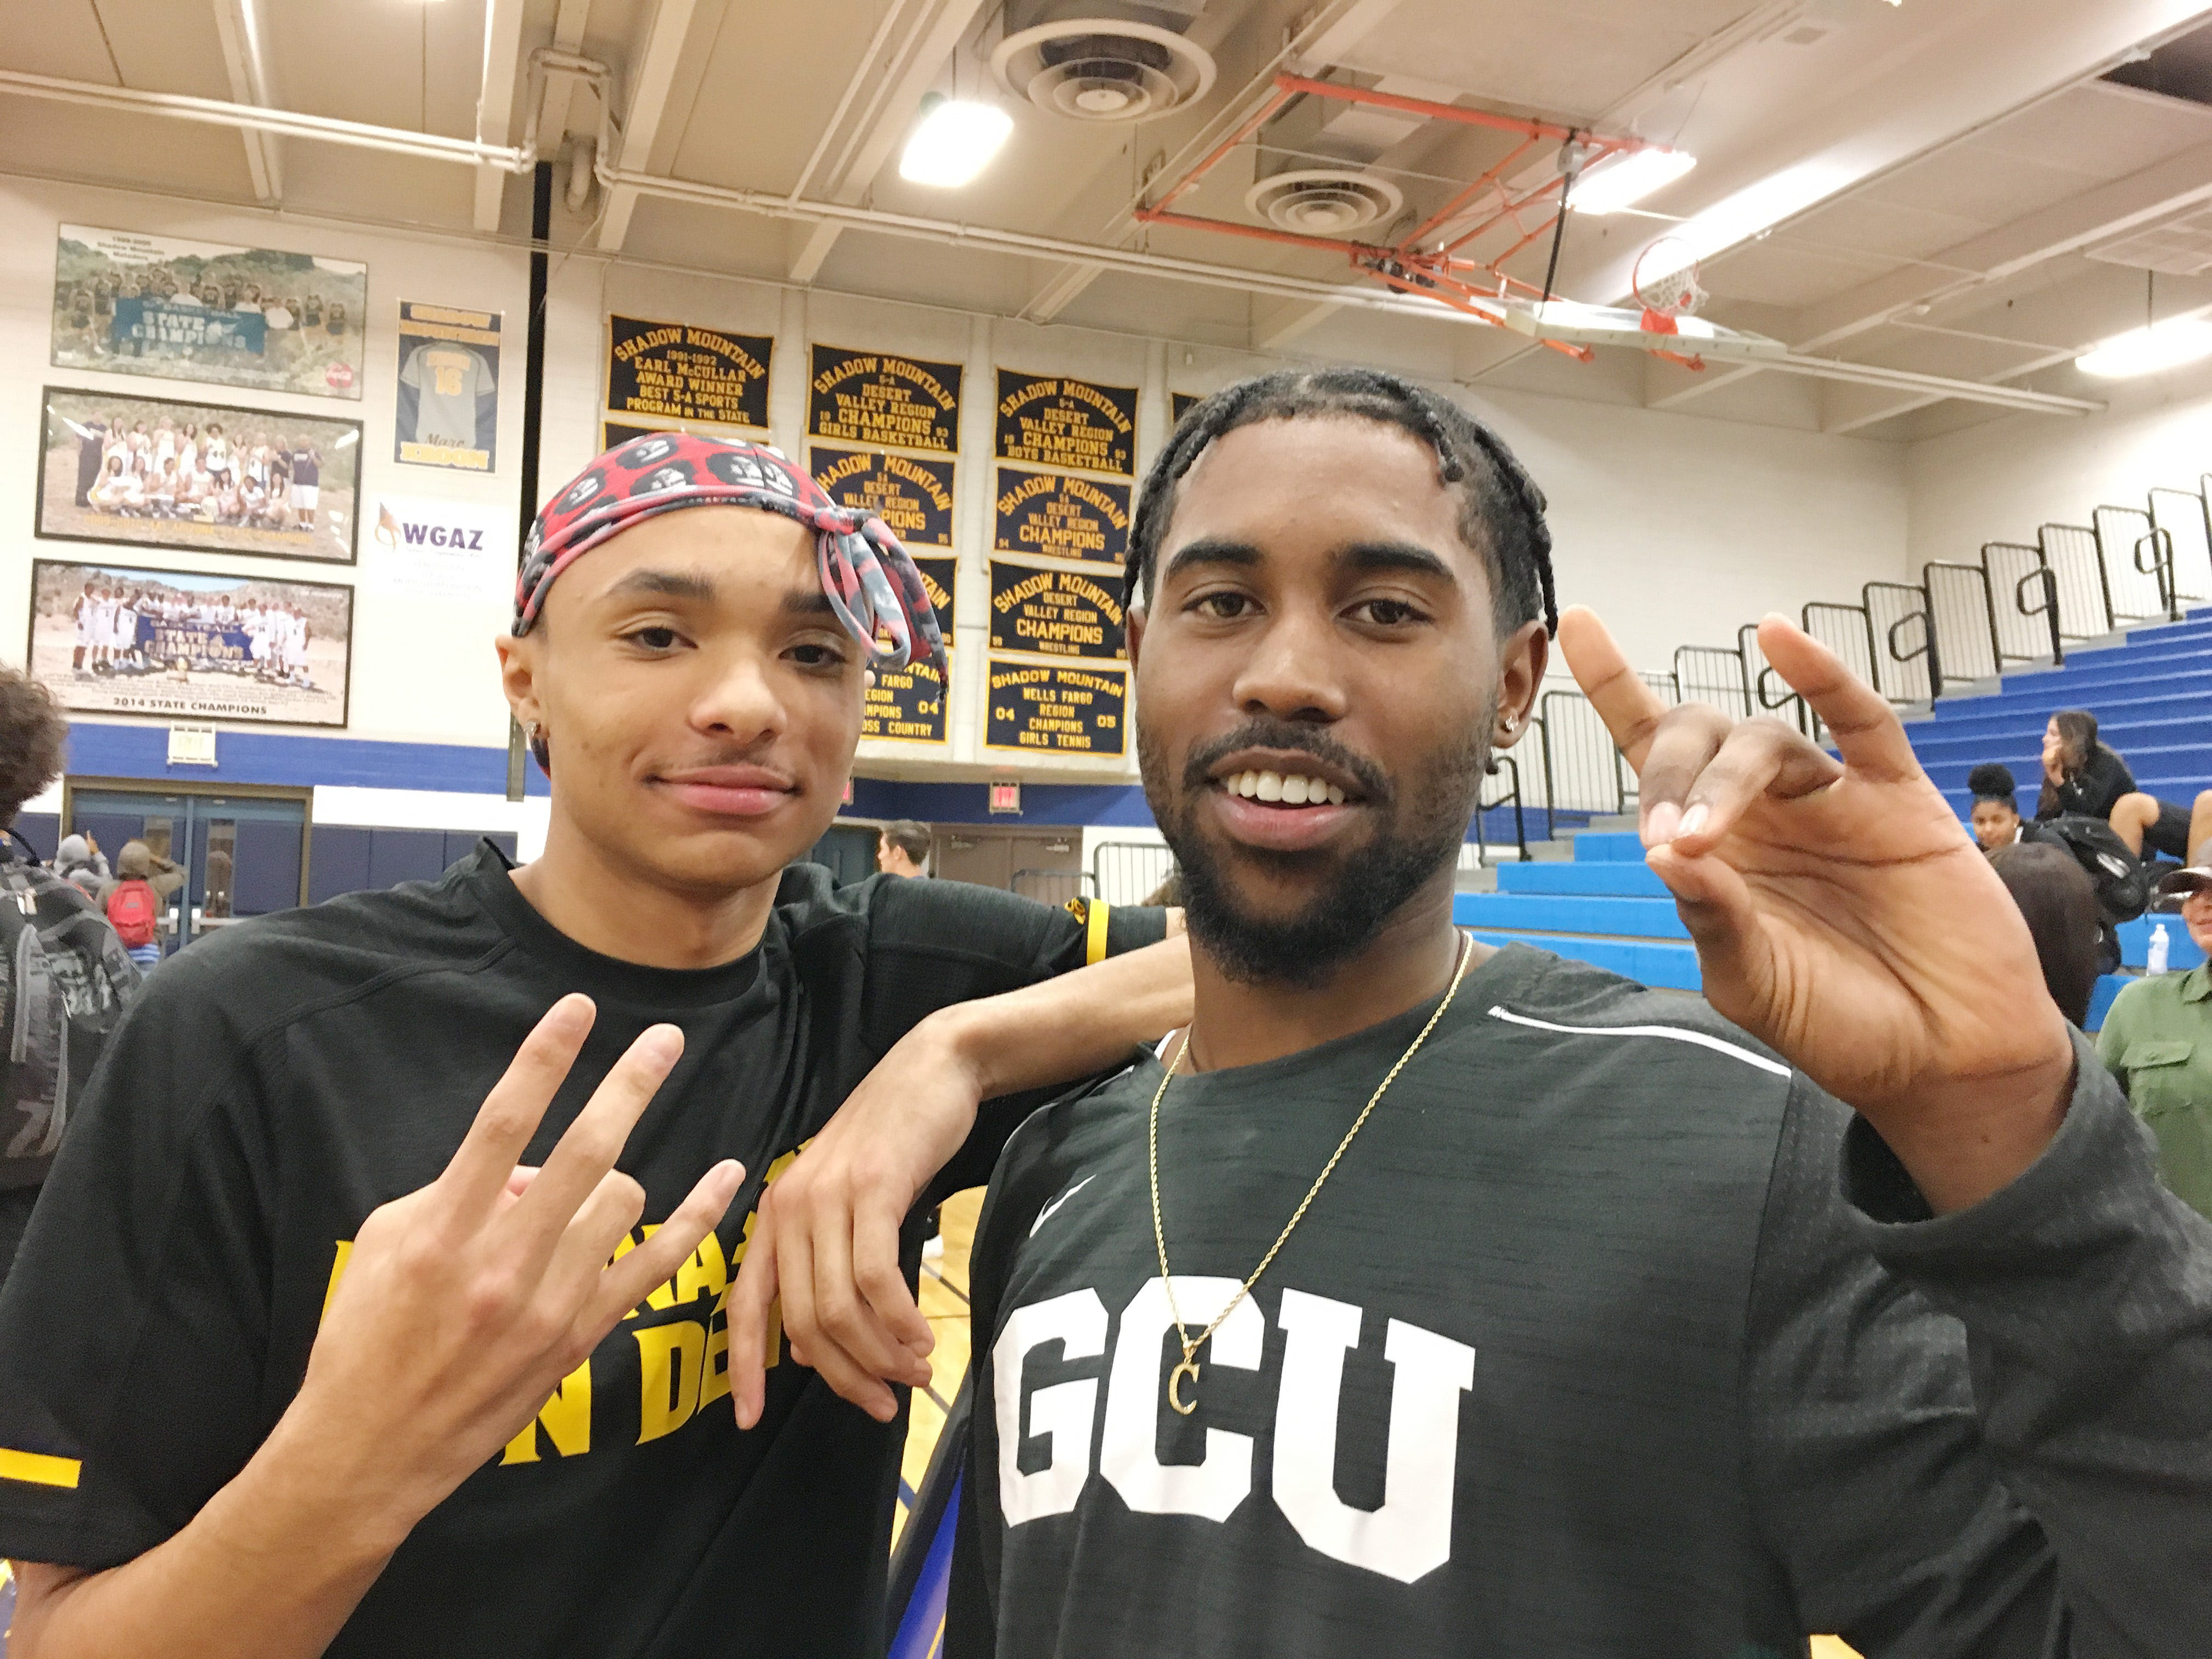 Shadow Mountain High School senior Jaelen House (left) and teammate Jovan Blacksher pose for a photo during a signing-day ceremony at the school gym. Jaelen House signed with Arizona State and Jovan Blacksher signed with Grand Canyon.